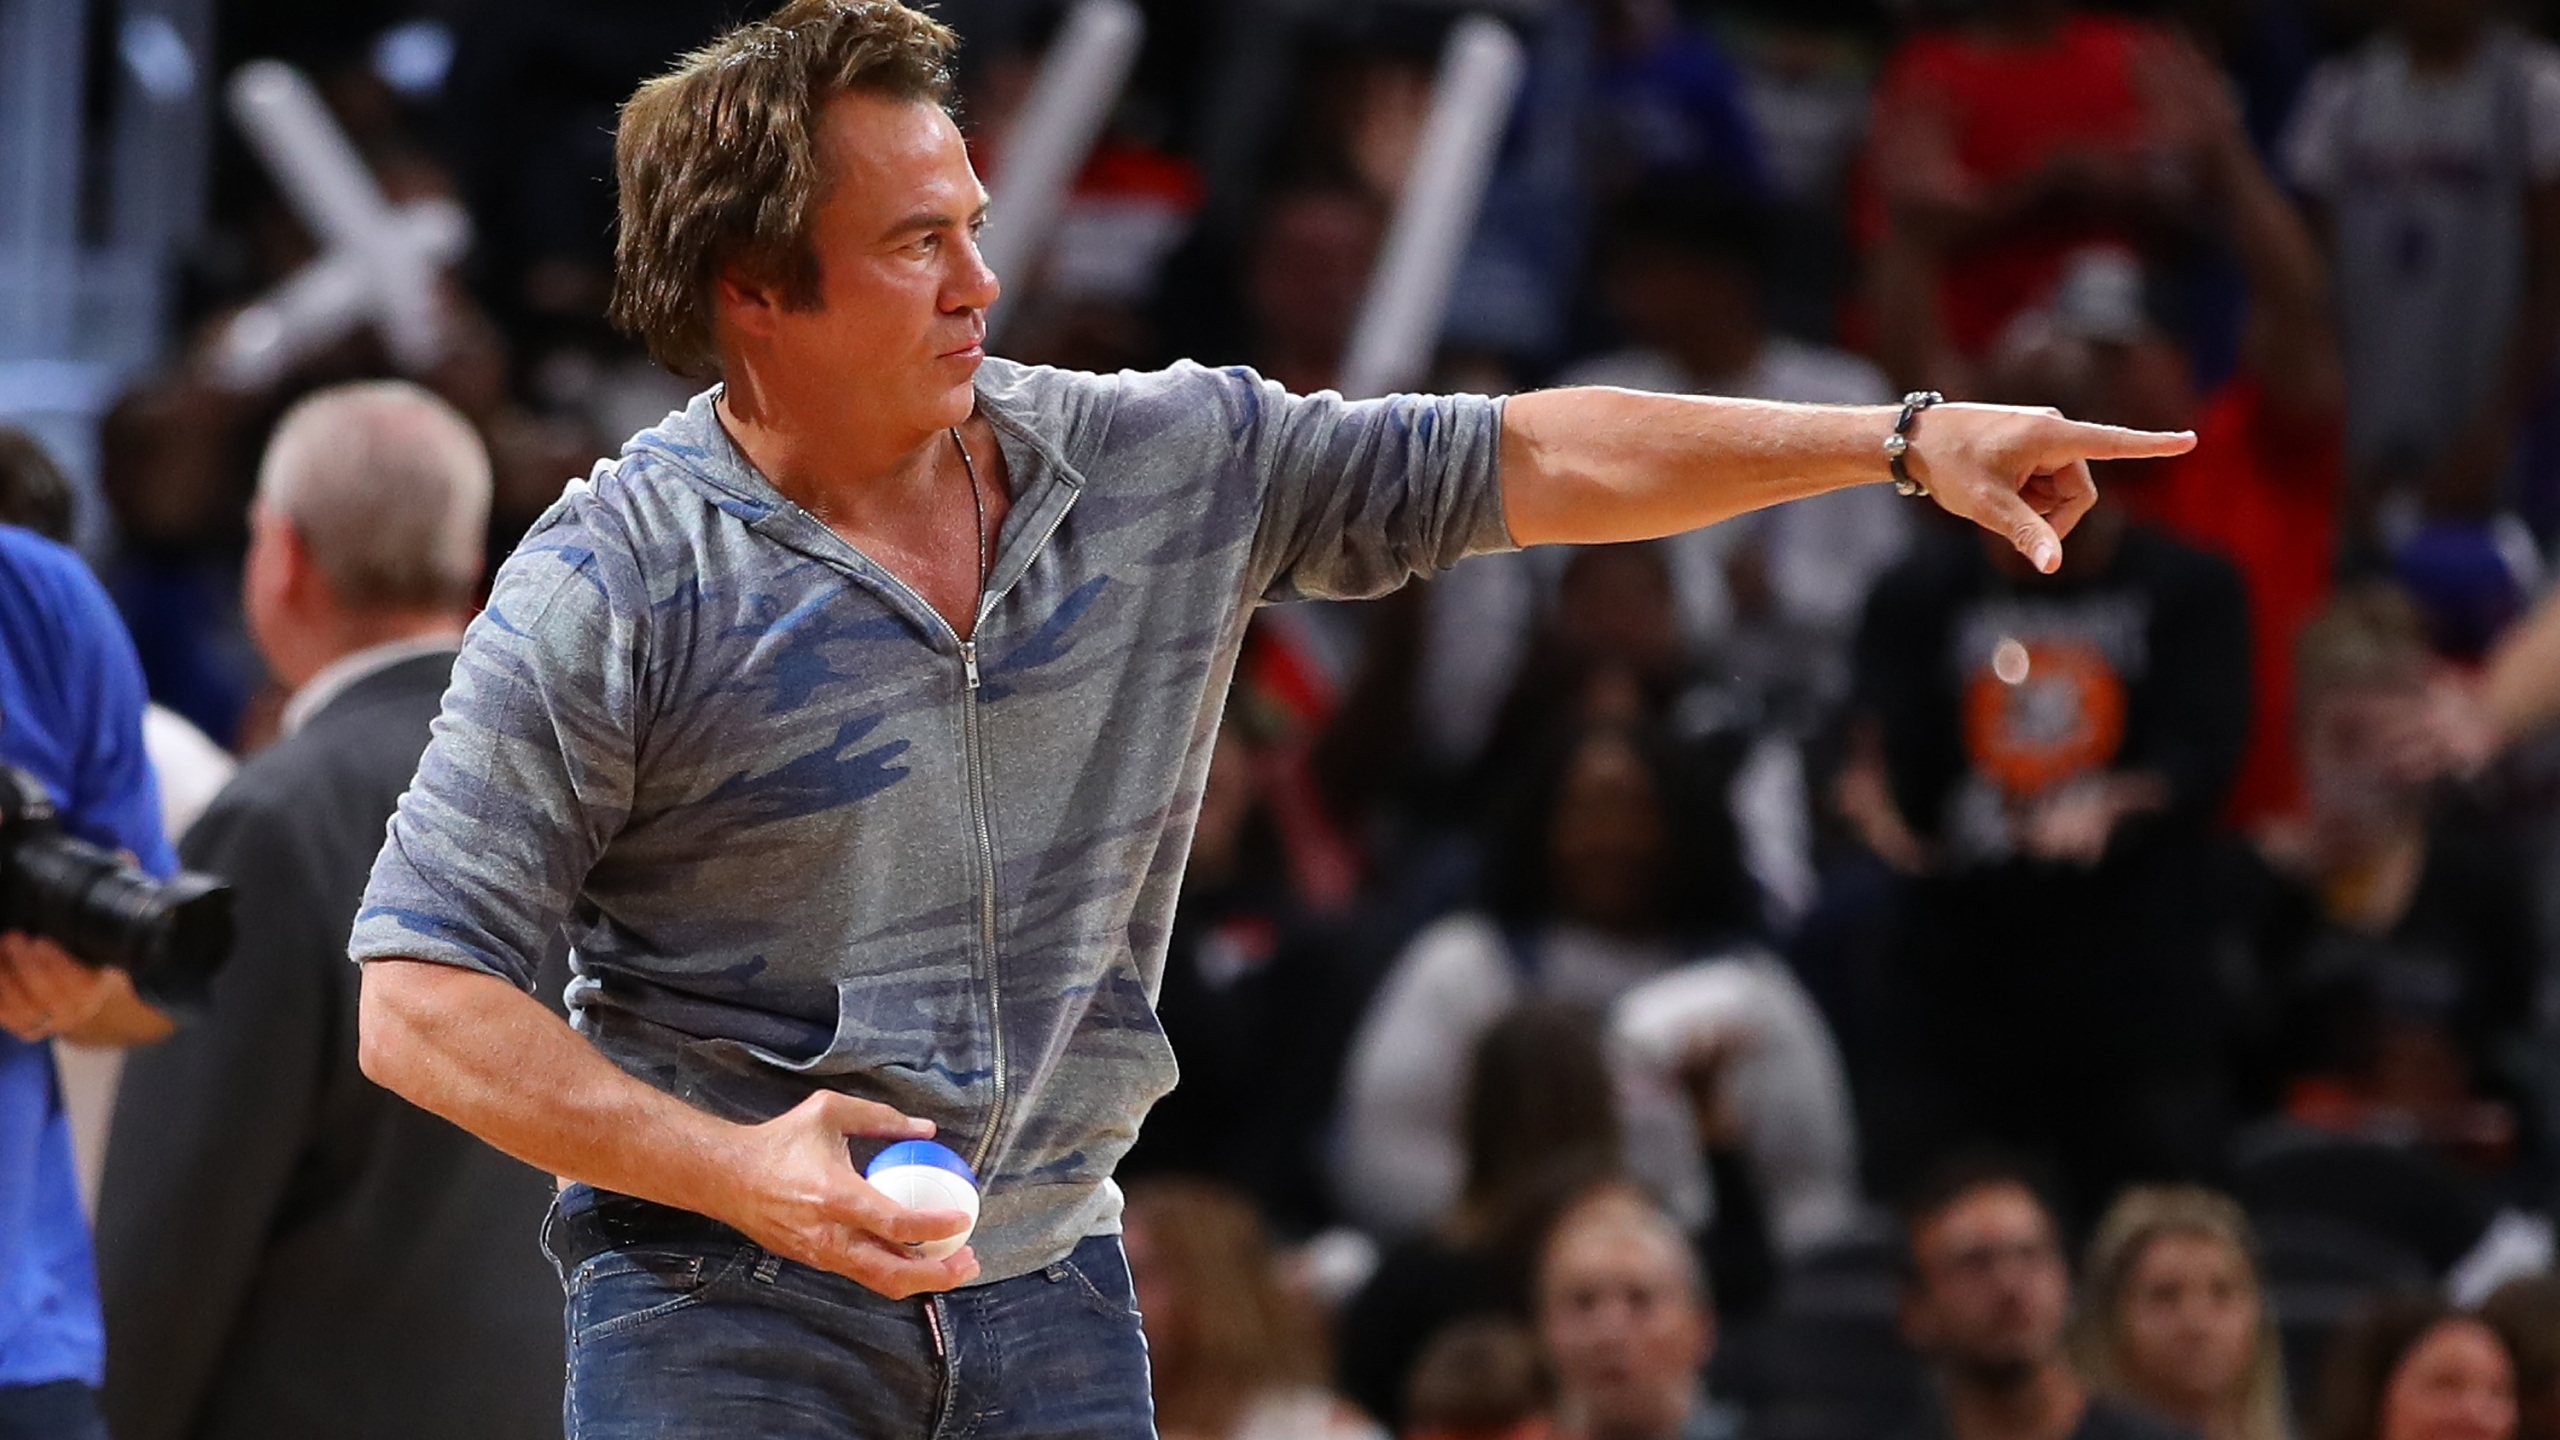 Owner of the Detroit Pistons Tom Gores throws a miniature basketball to fans during a pre-season game between the Orlando Magic and the Detroit Pistons at Little Caesars Arena in Detroit on Oct. 7, 2019. (Gregory Shamus / Getty Images)